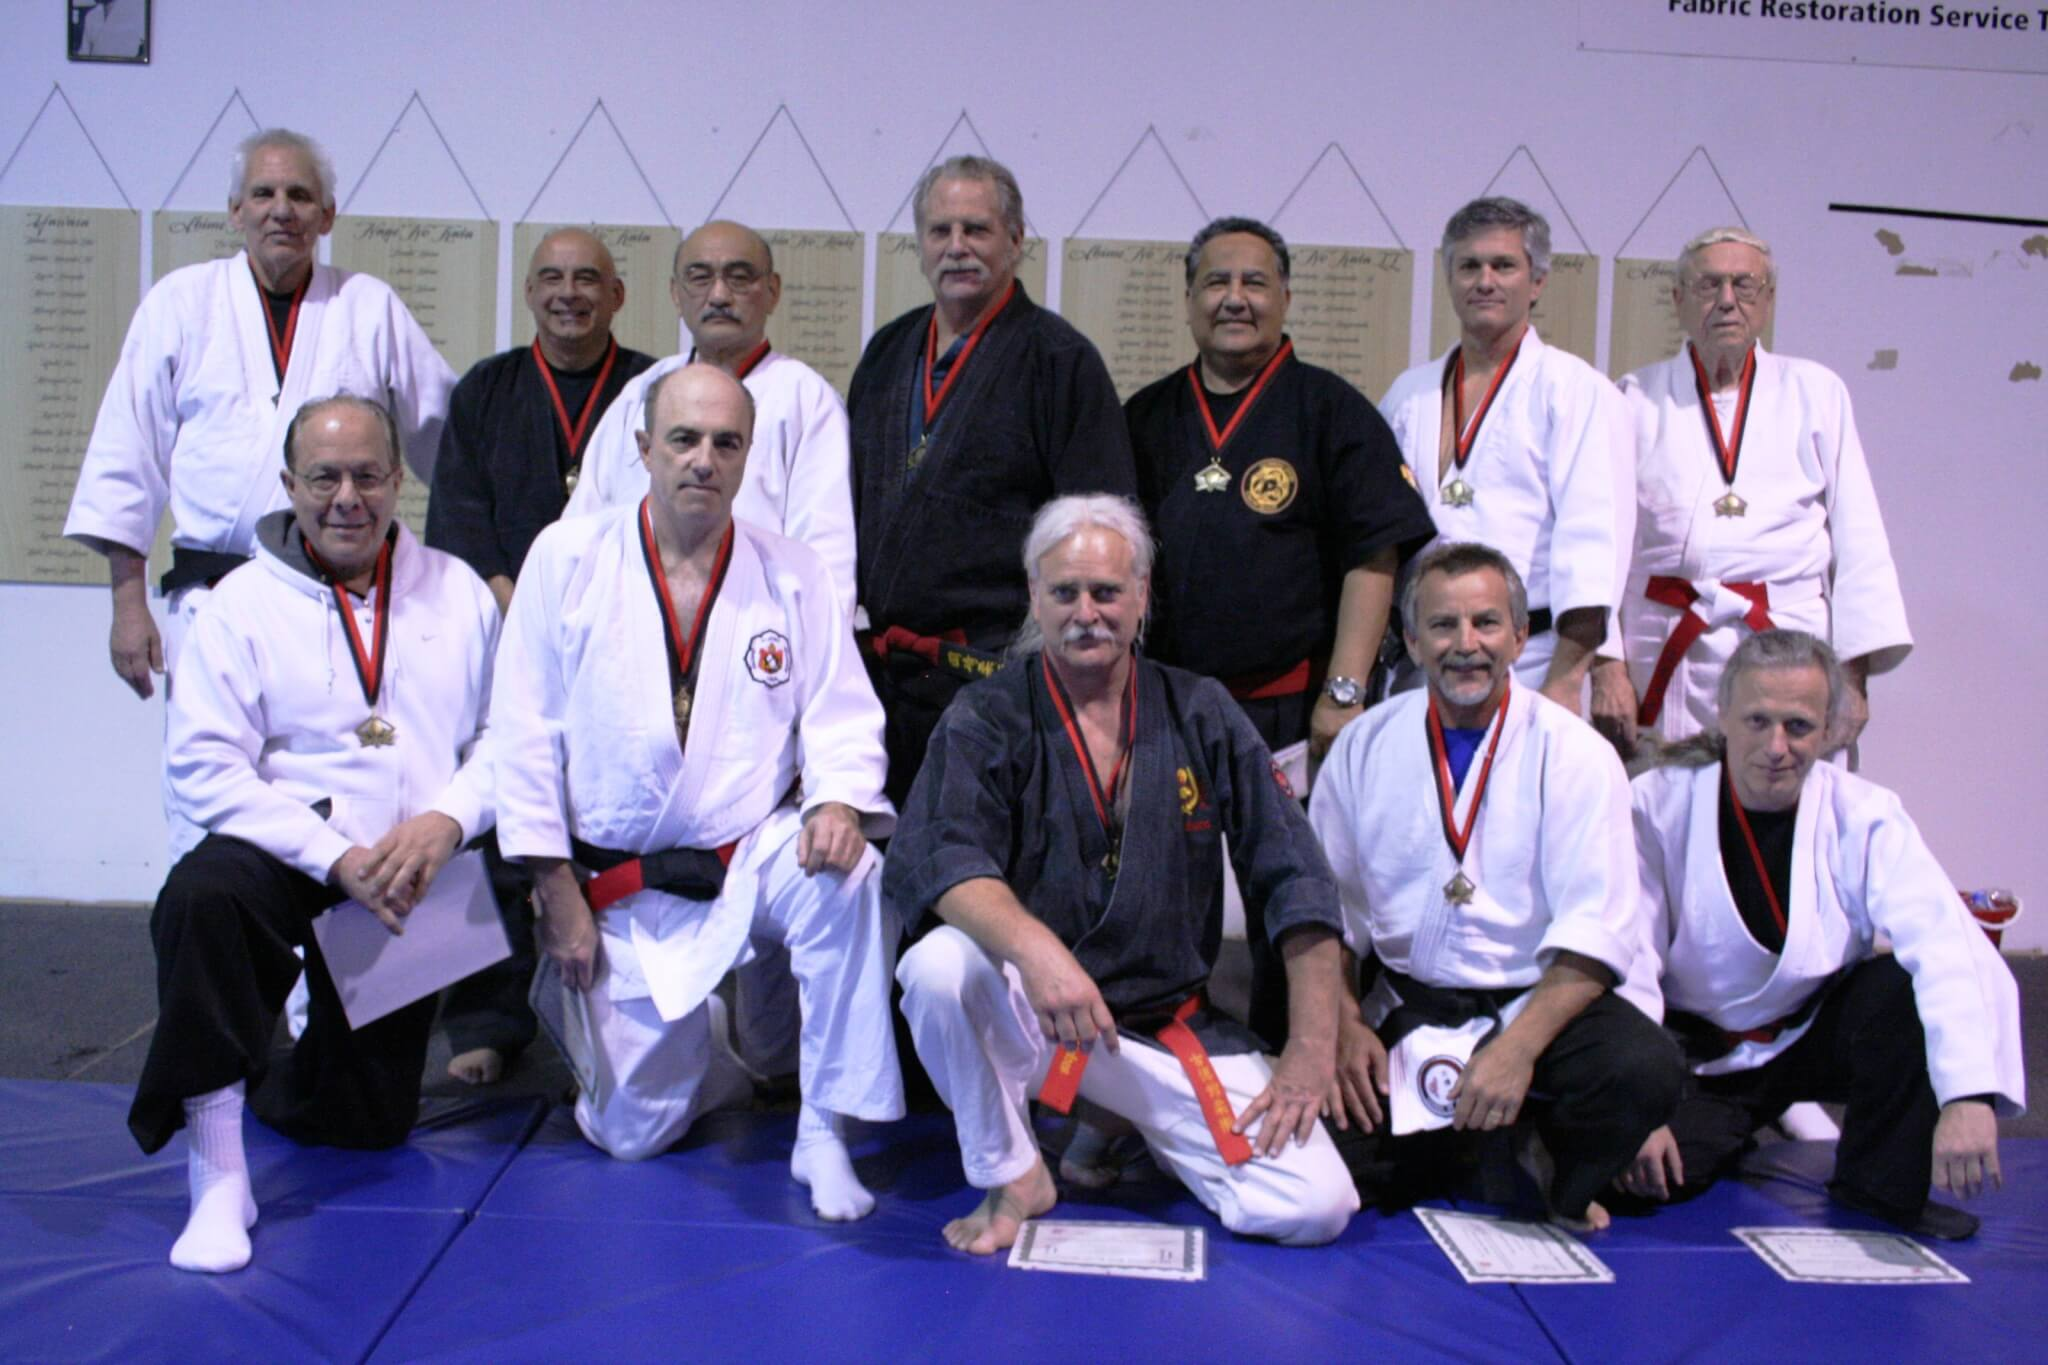 2010 Bob Krull Memorial, Hayward, CA - Instructors